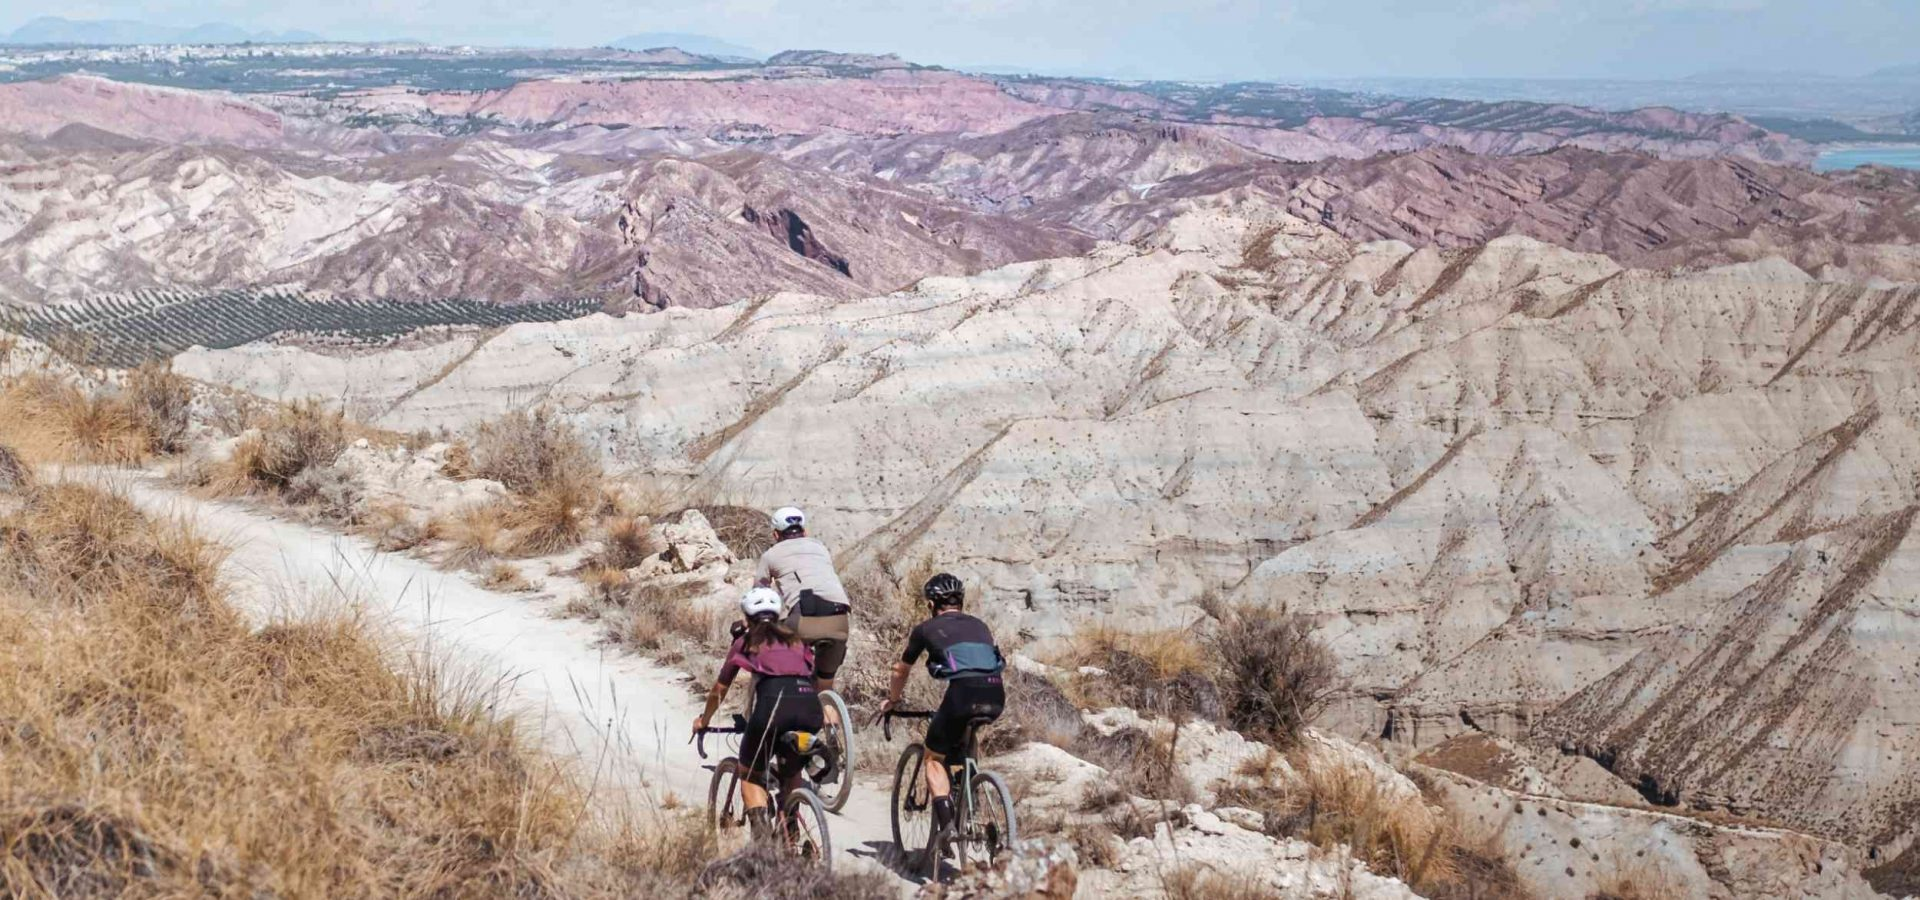 Two cyclists ride away from the camera on a gravel road in the desert, with mountains in the background